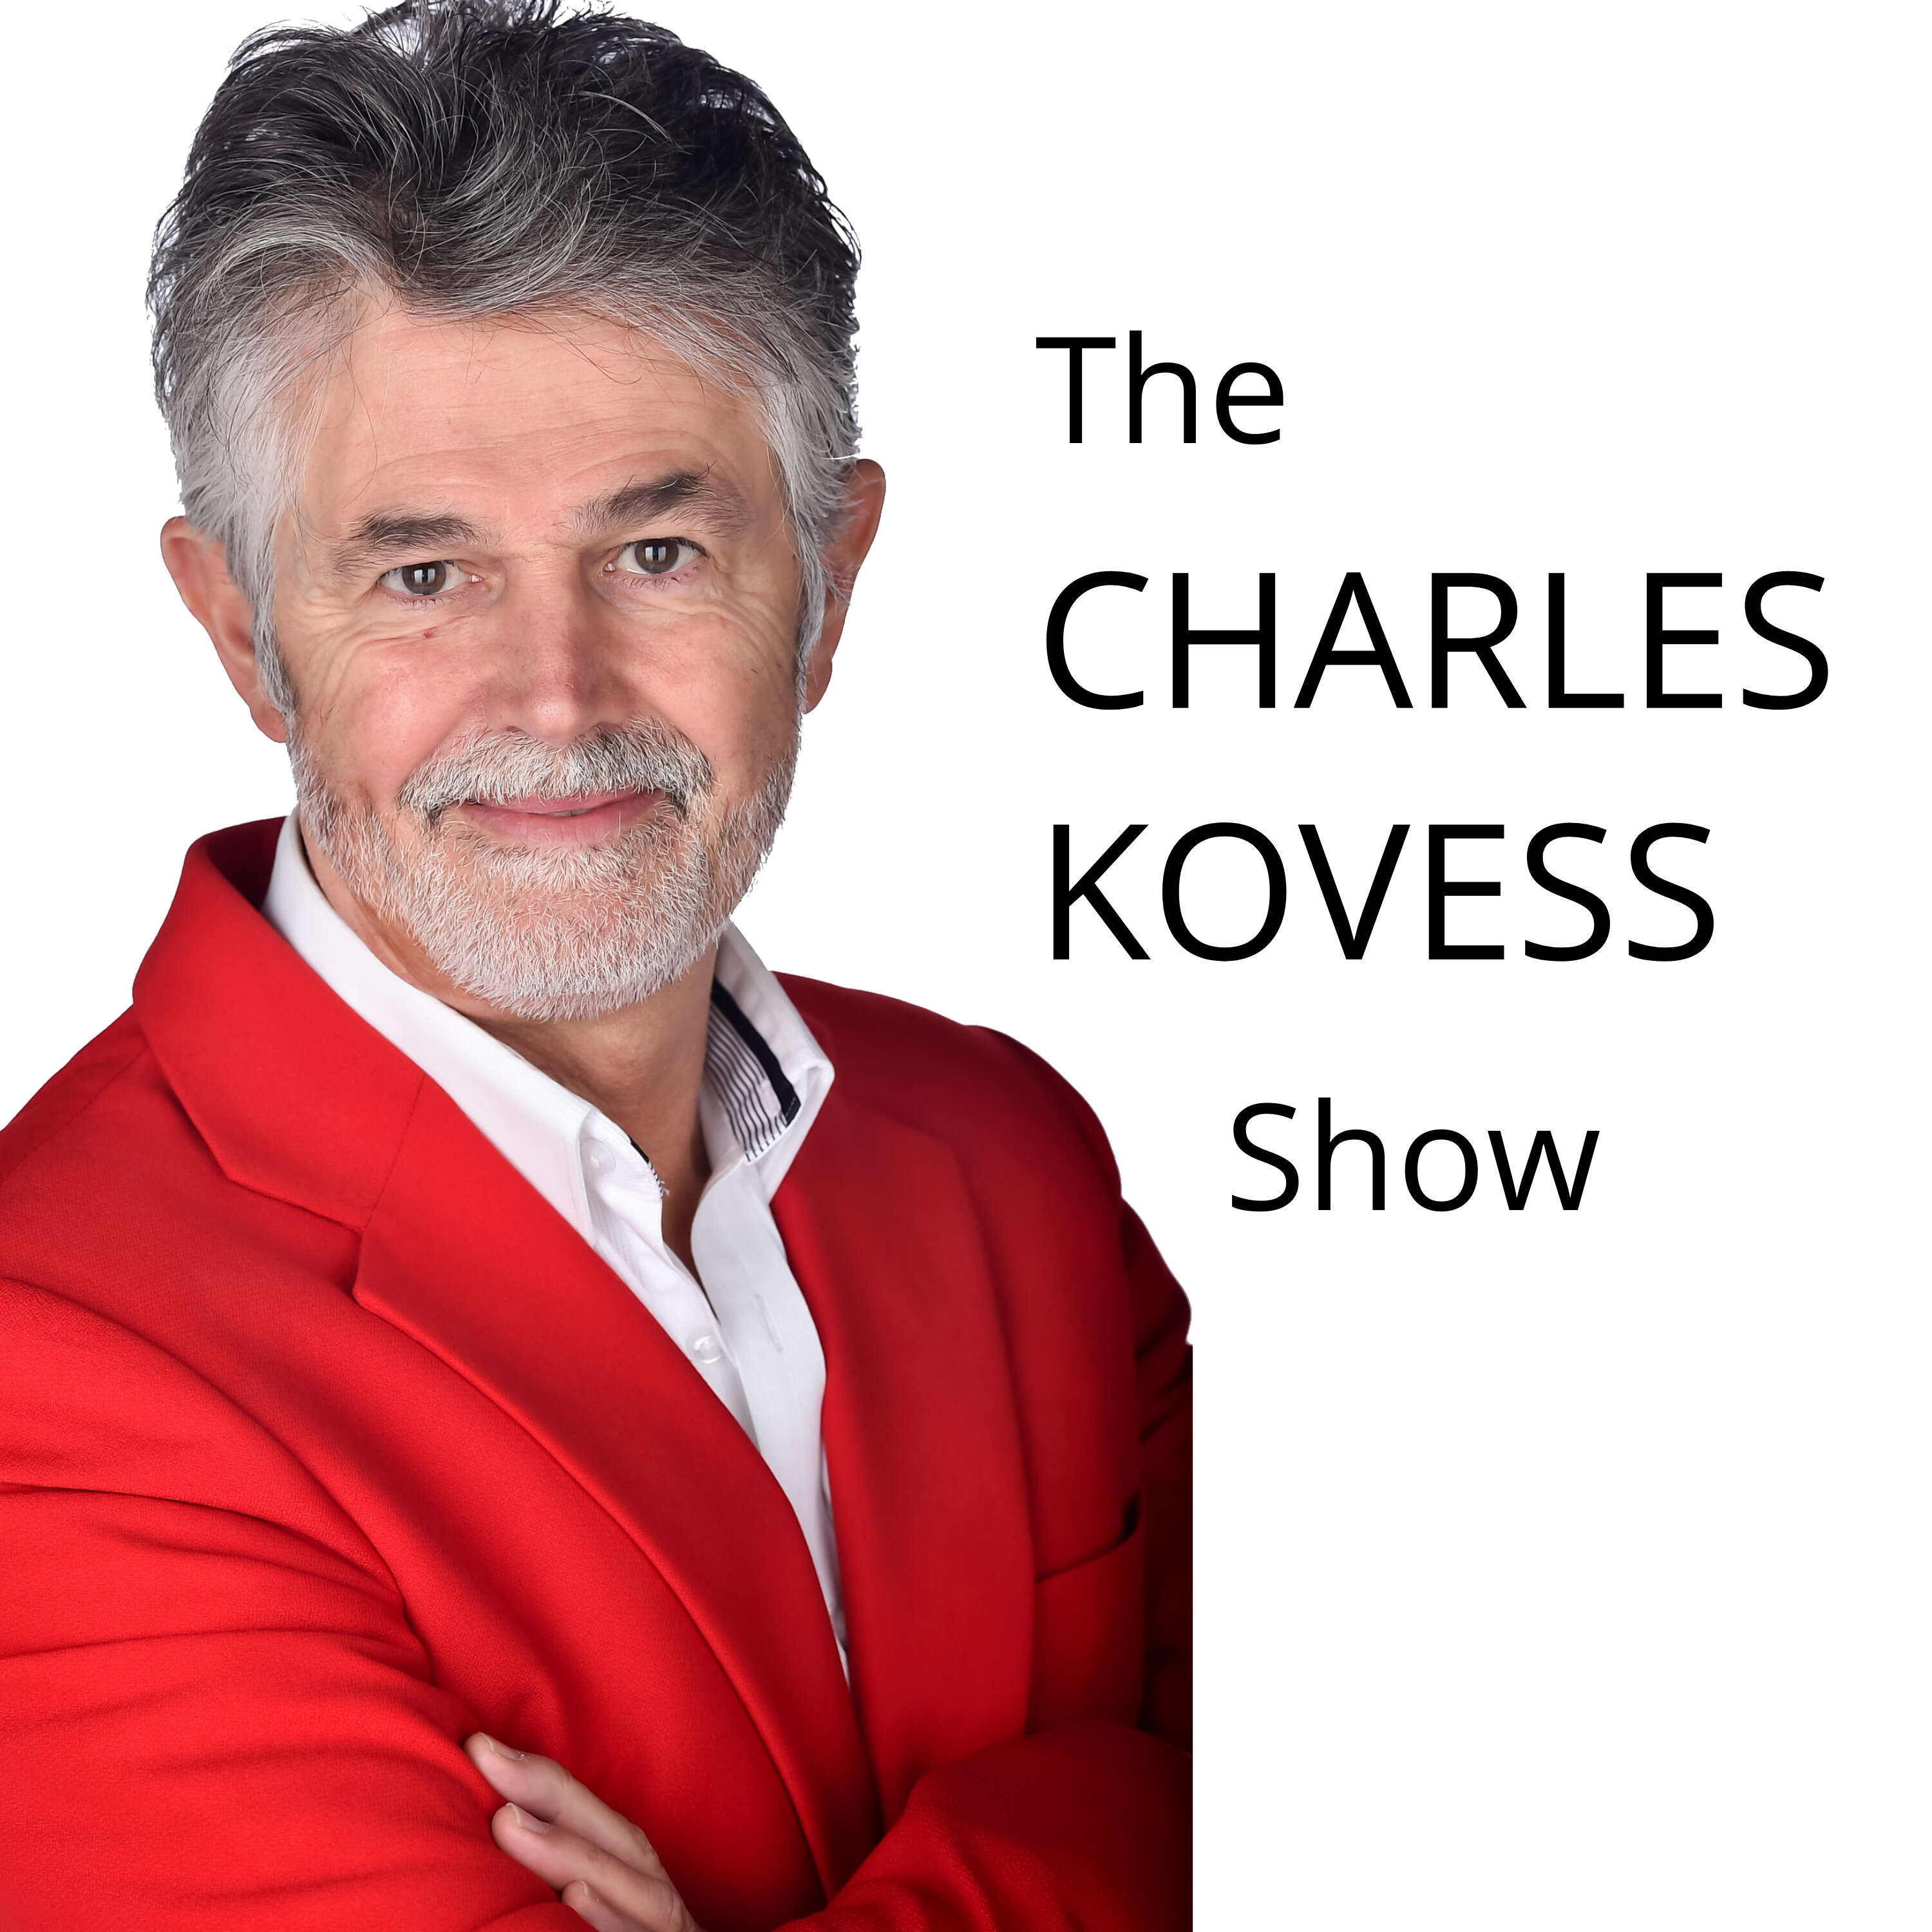 The Charles Kovess Show